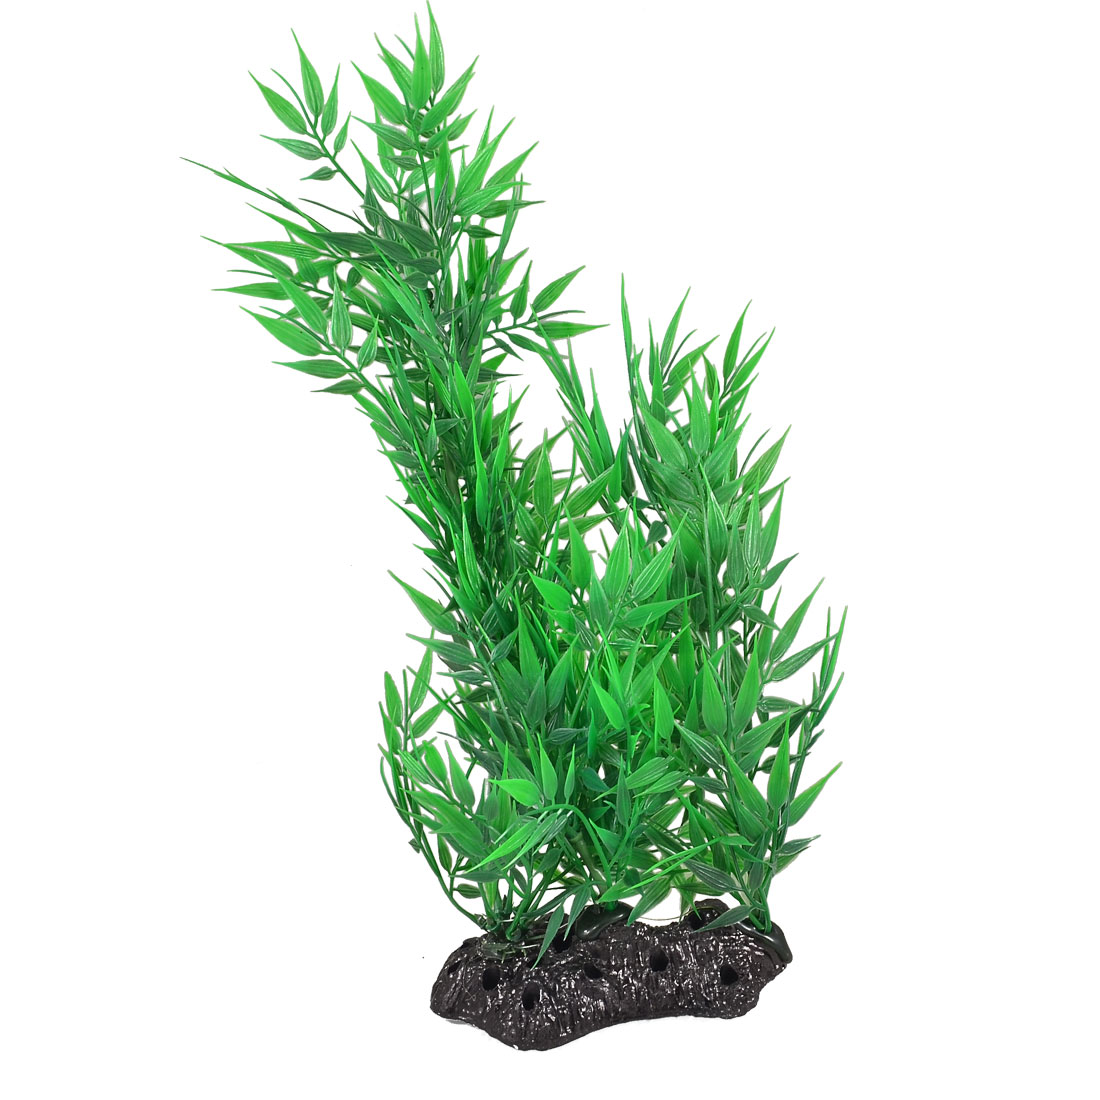 Aquarium Fish Tank Ornament Bamboo Type Green Plastic Water Plant